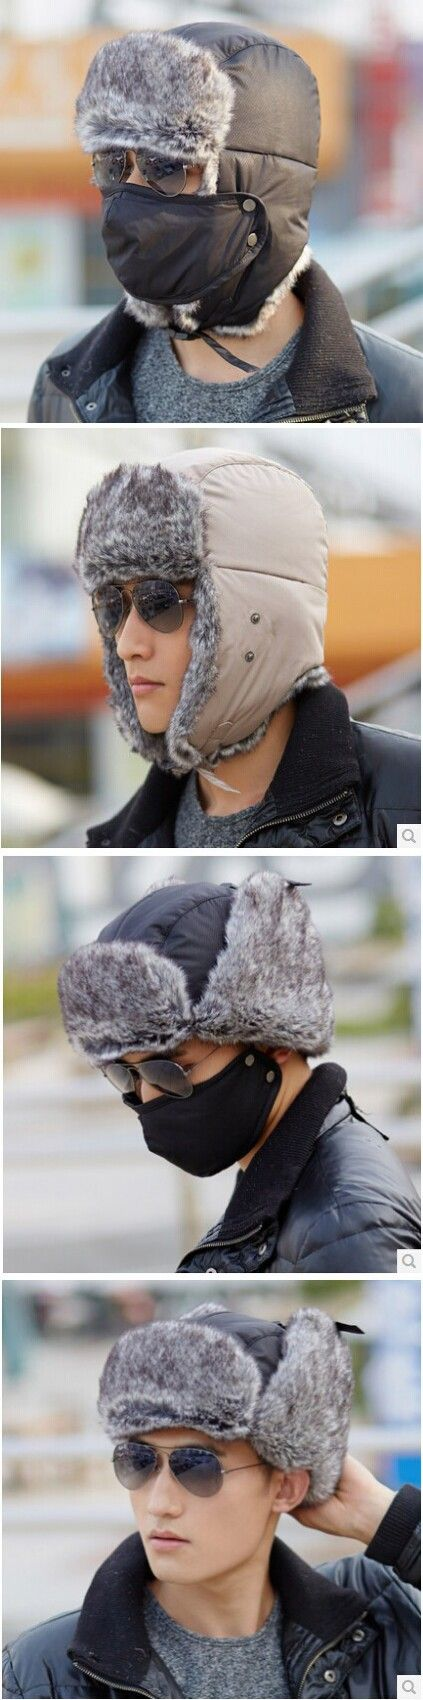 Wholesale price 2014 new design stylish mask riding warm men korean russian winter hat with ear flaps free shipping $12.8